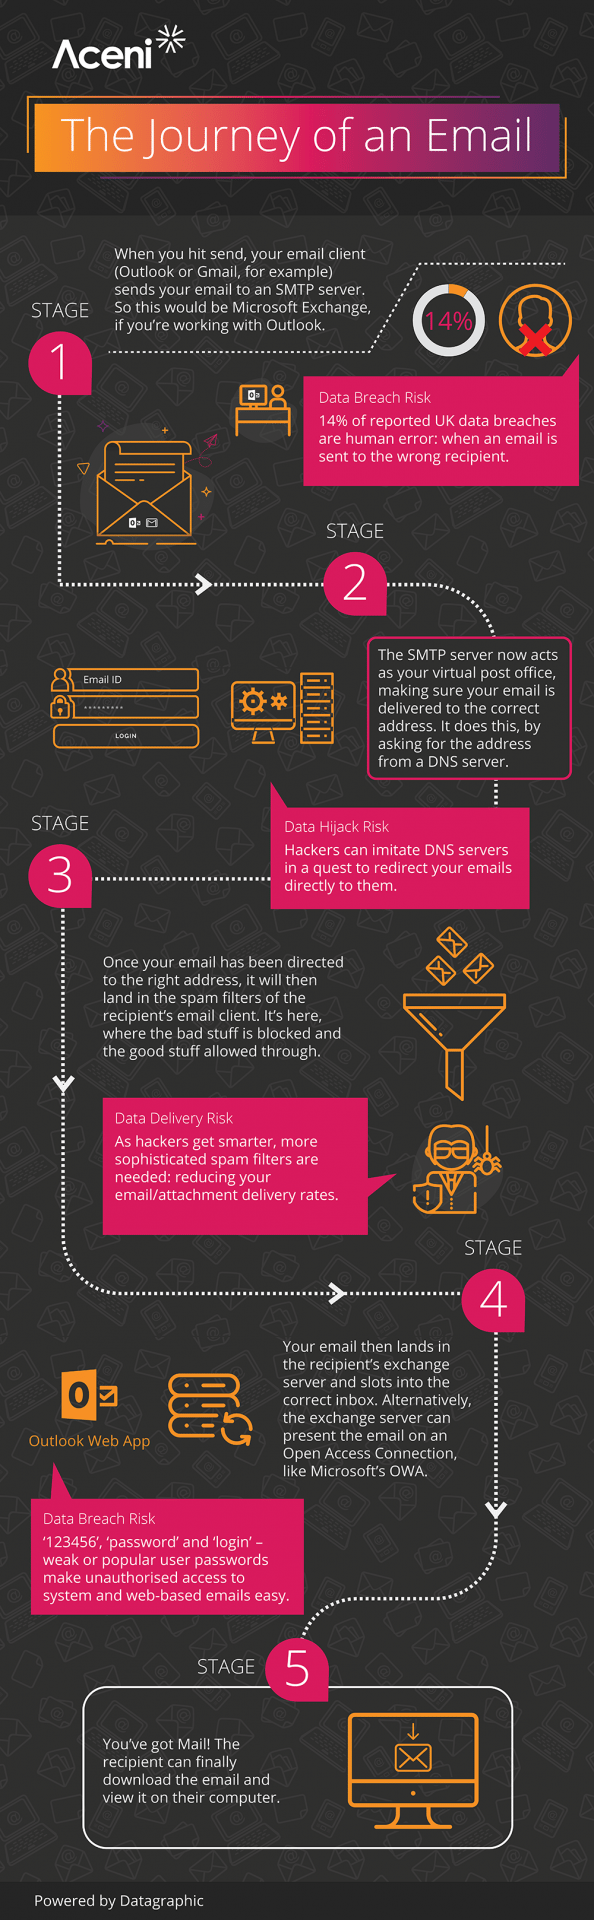 Is email secure - infographic - Aceni